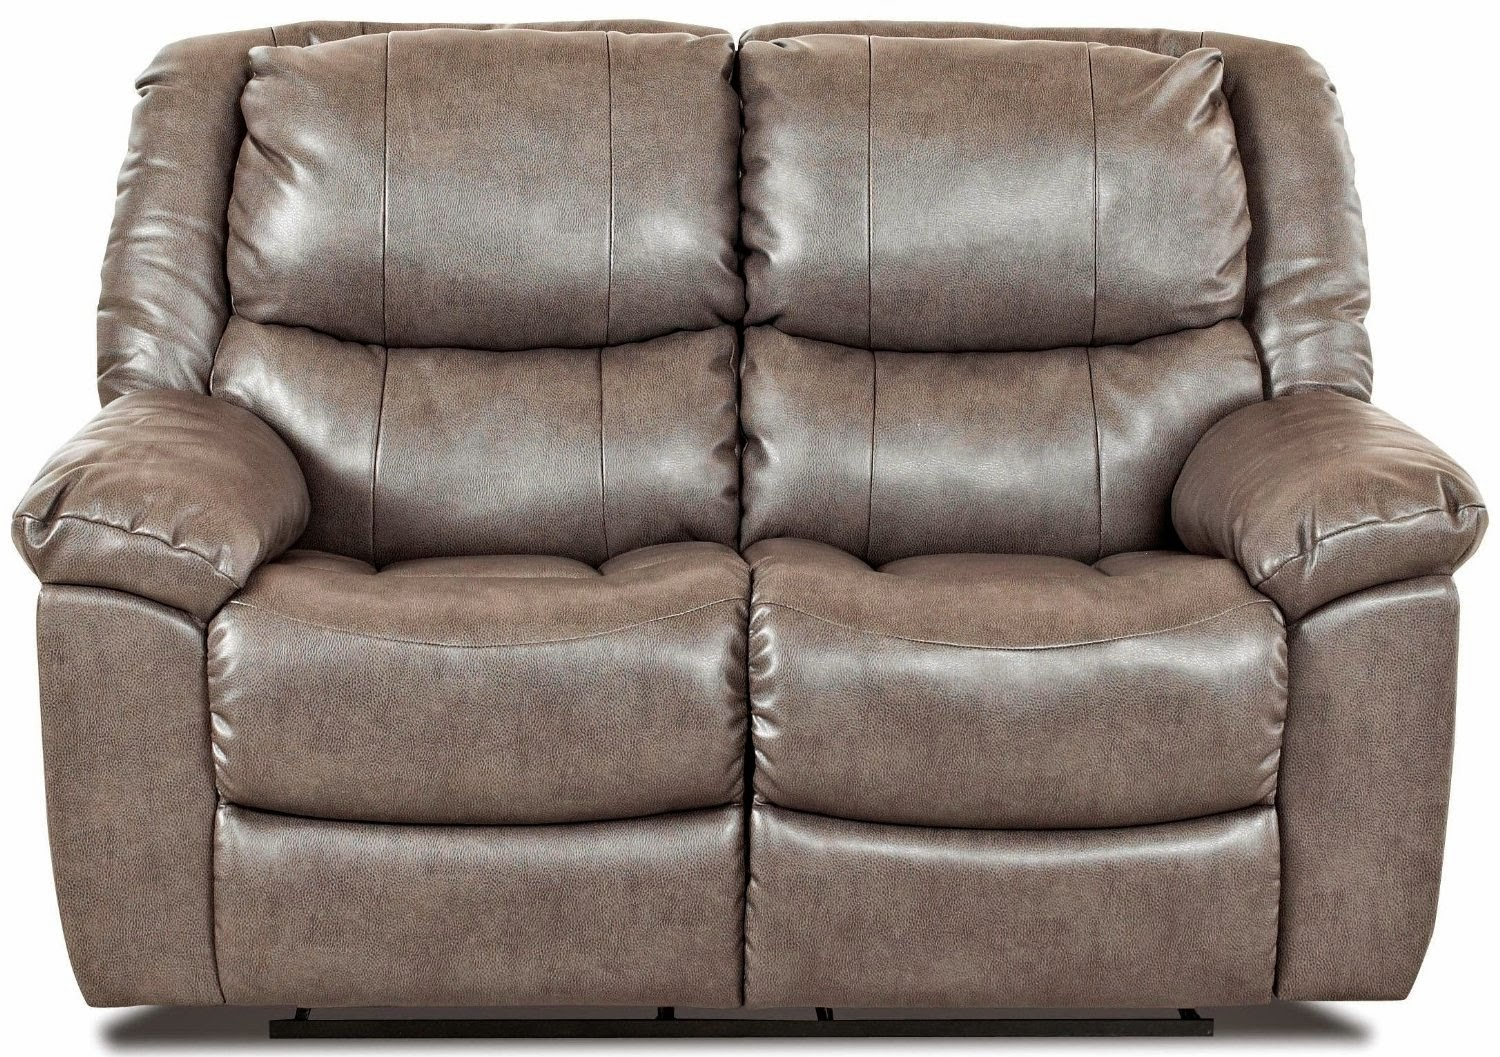 Best reclining sofa for the money klaussner bonded leather reclining sofa Leather loveseat recliners